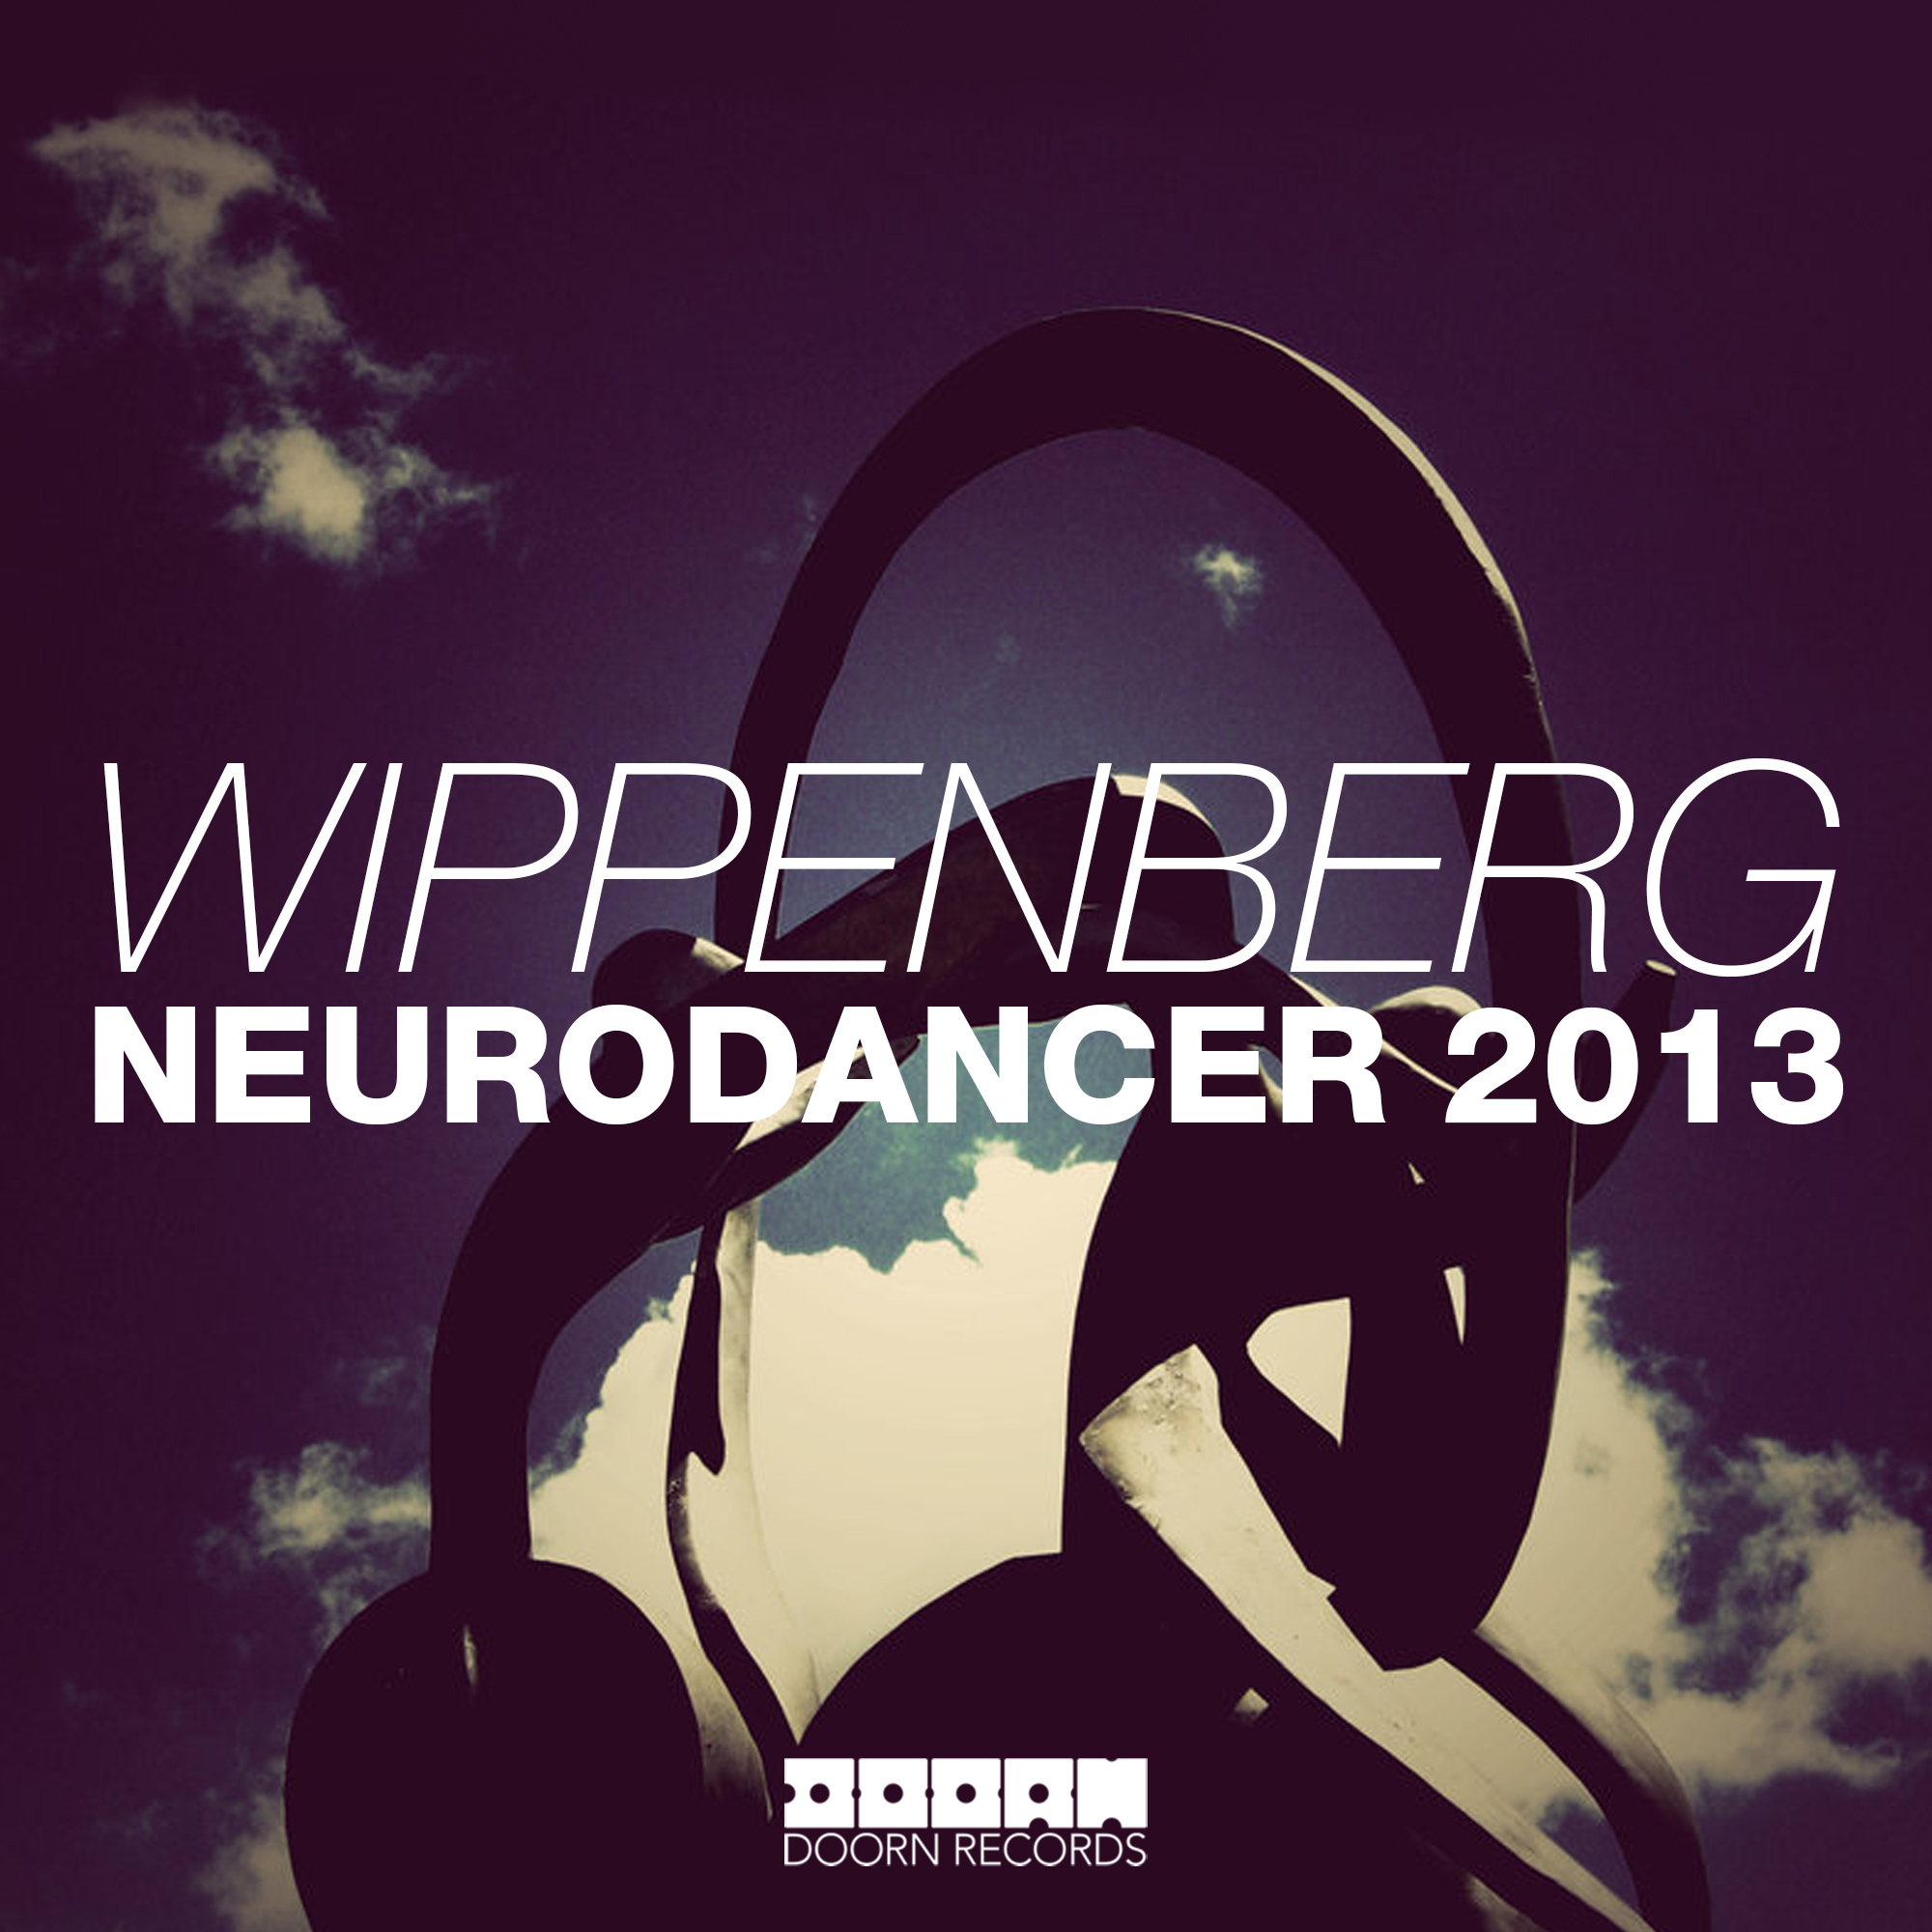 Wippenberg – Neurodancer 2013 (Original Mix)